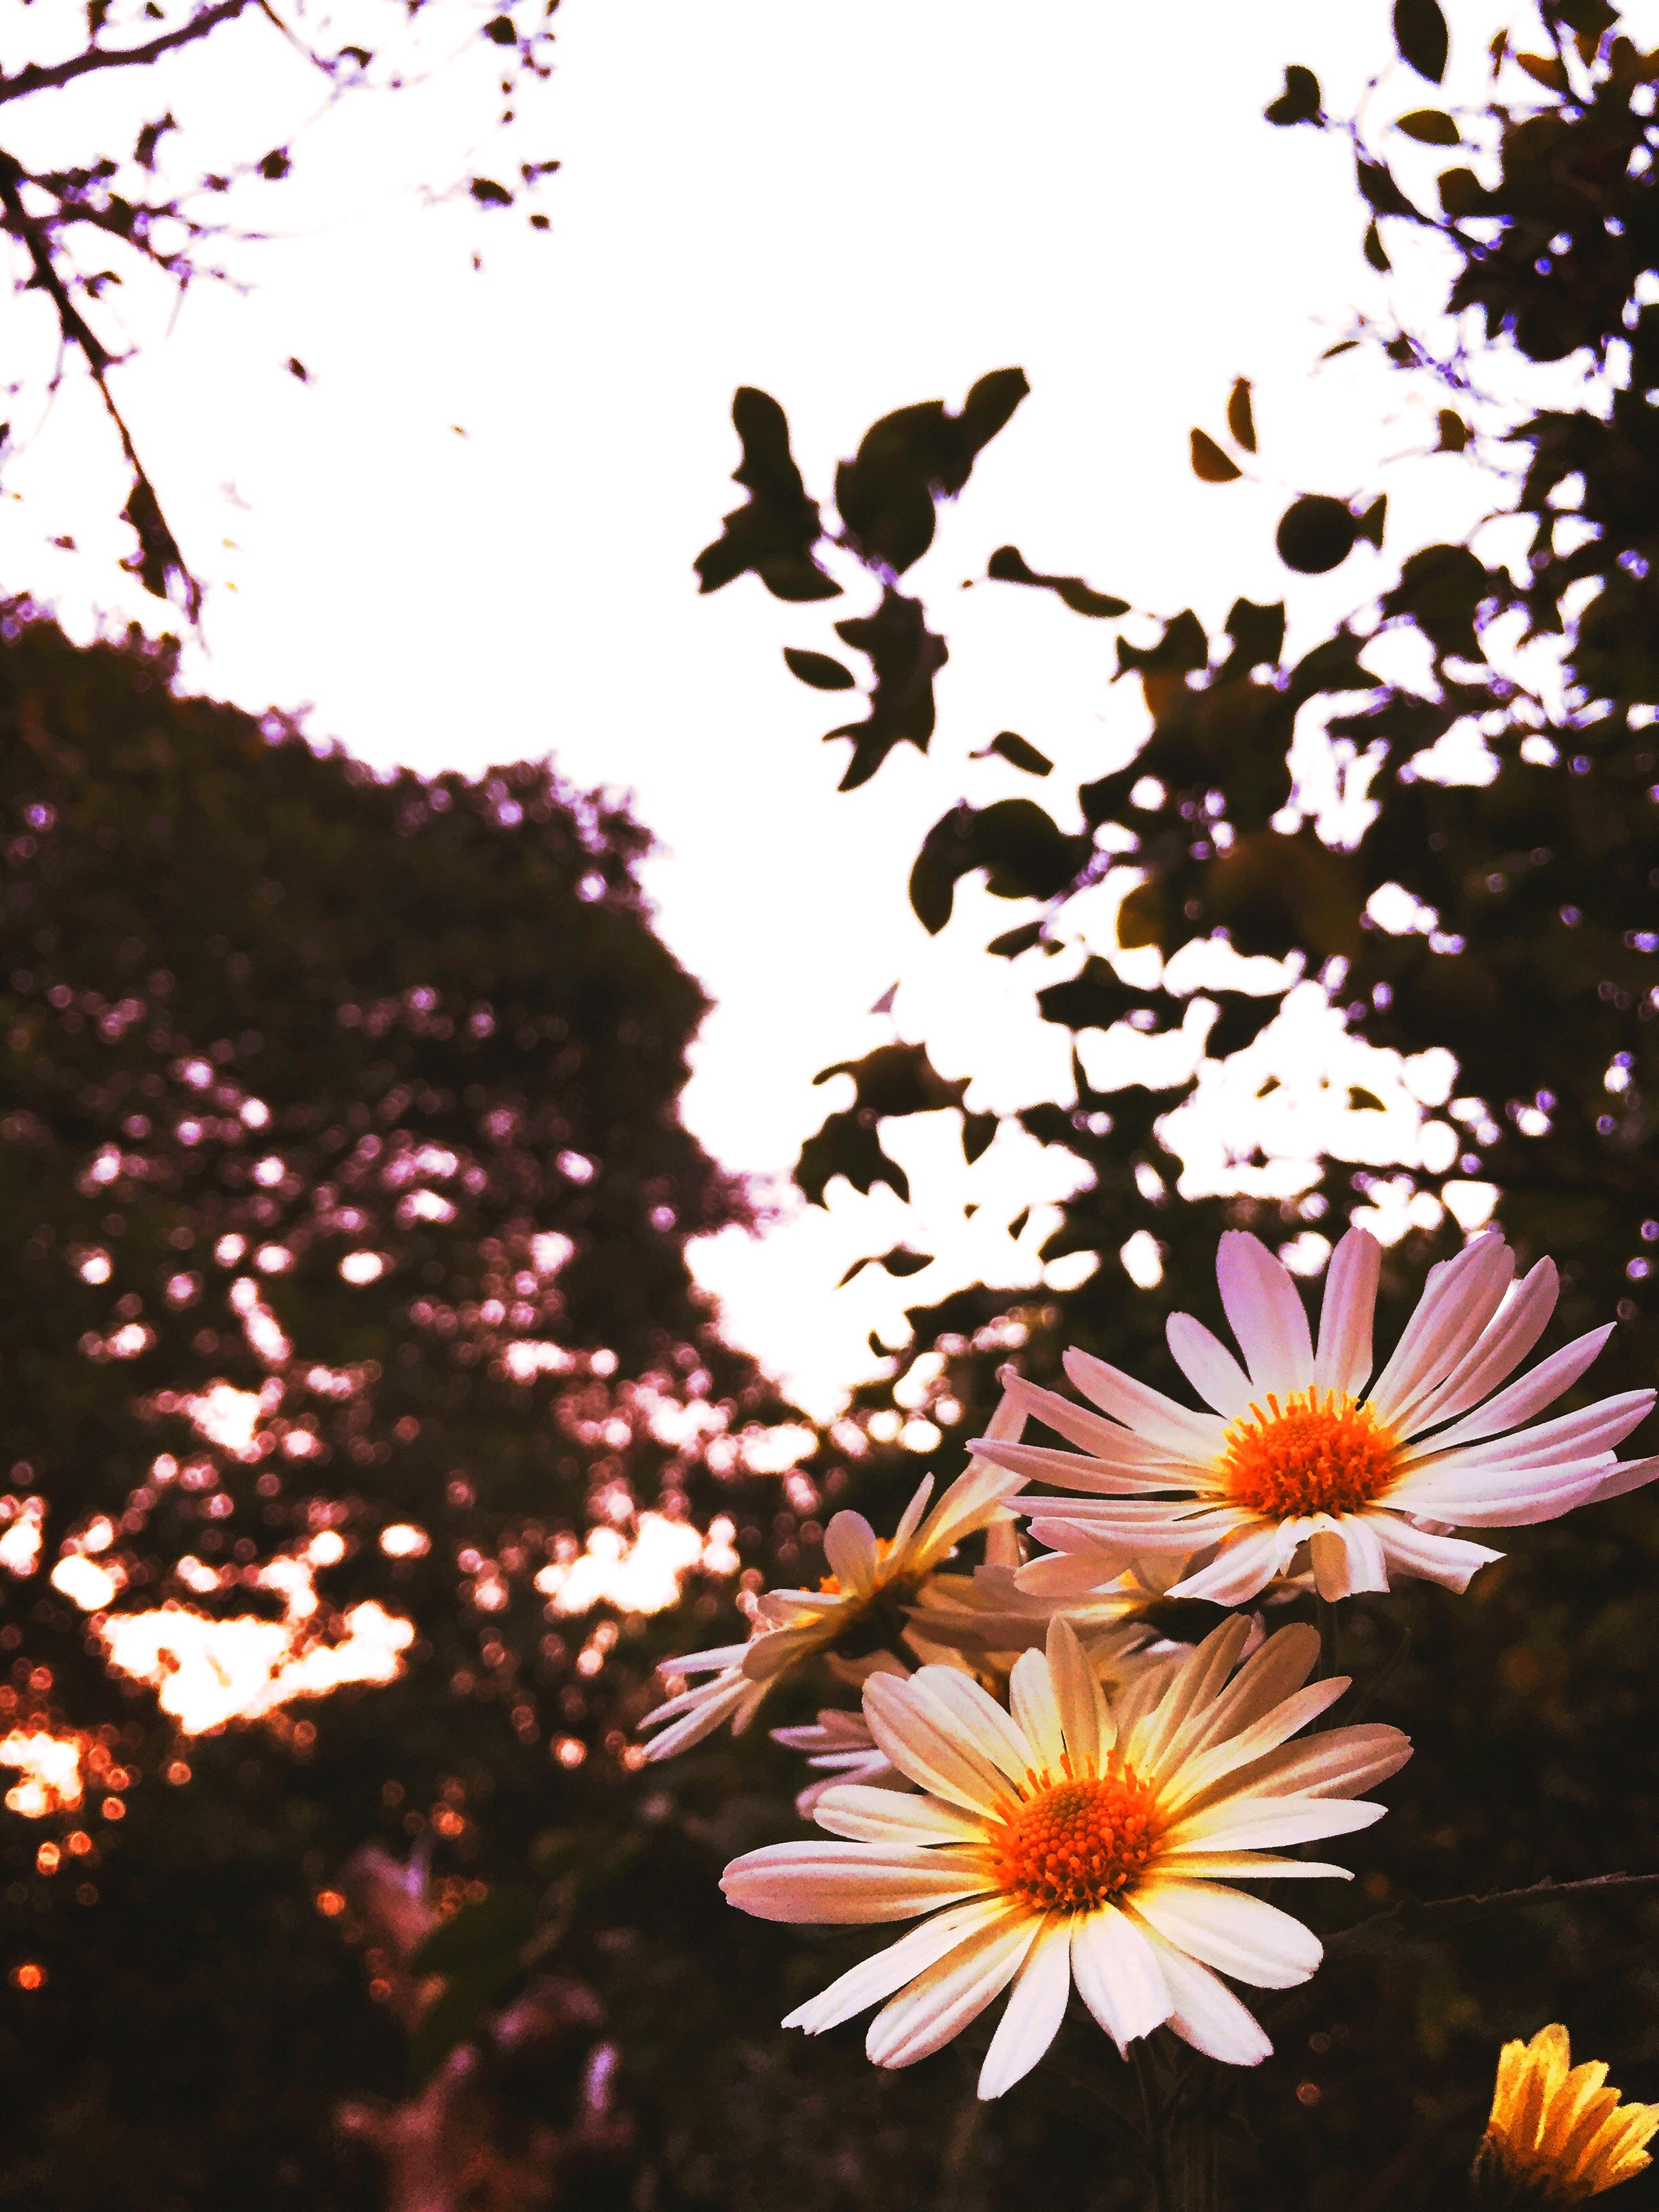 flower, petal, fragility, freshness, growth, beauty in nature, blooming, flower head, nature, in bloom, plant, focus on foreground, tree, blossom, close-up, leaf, branch, springtime, botany, outdoors